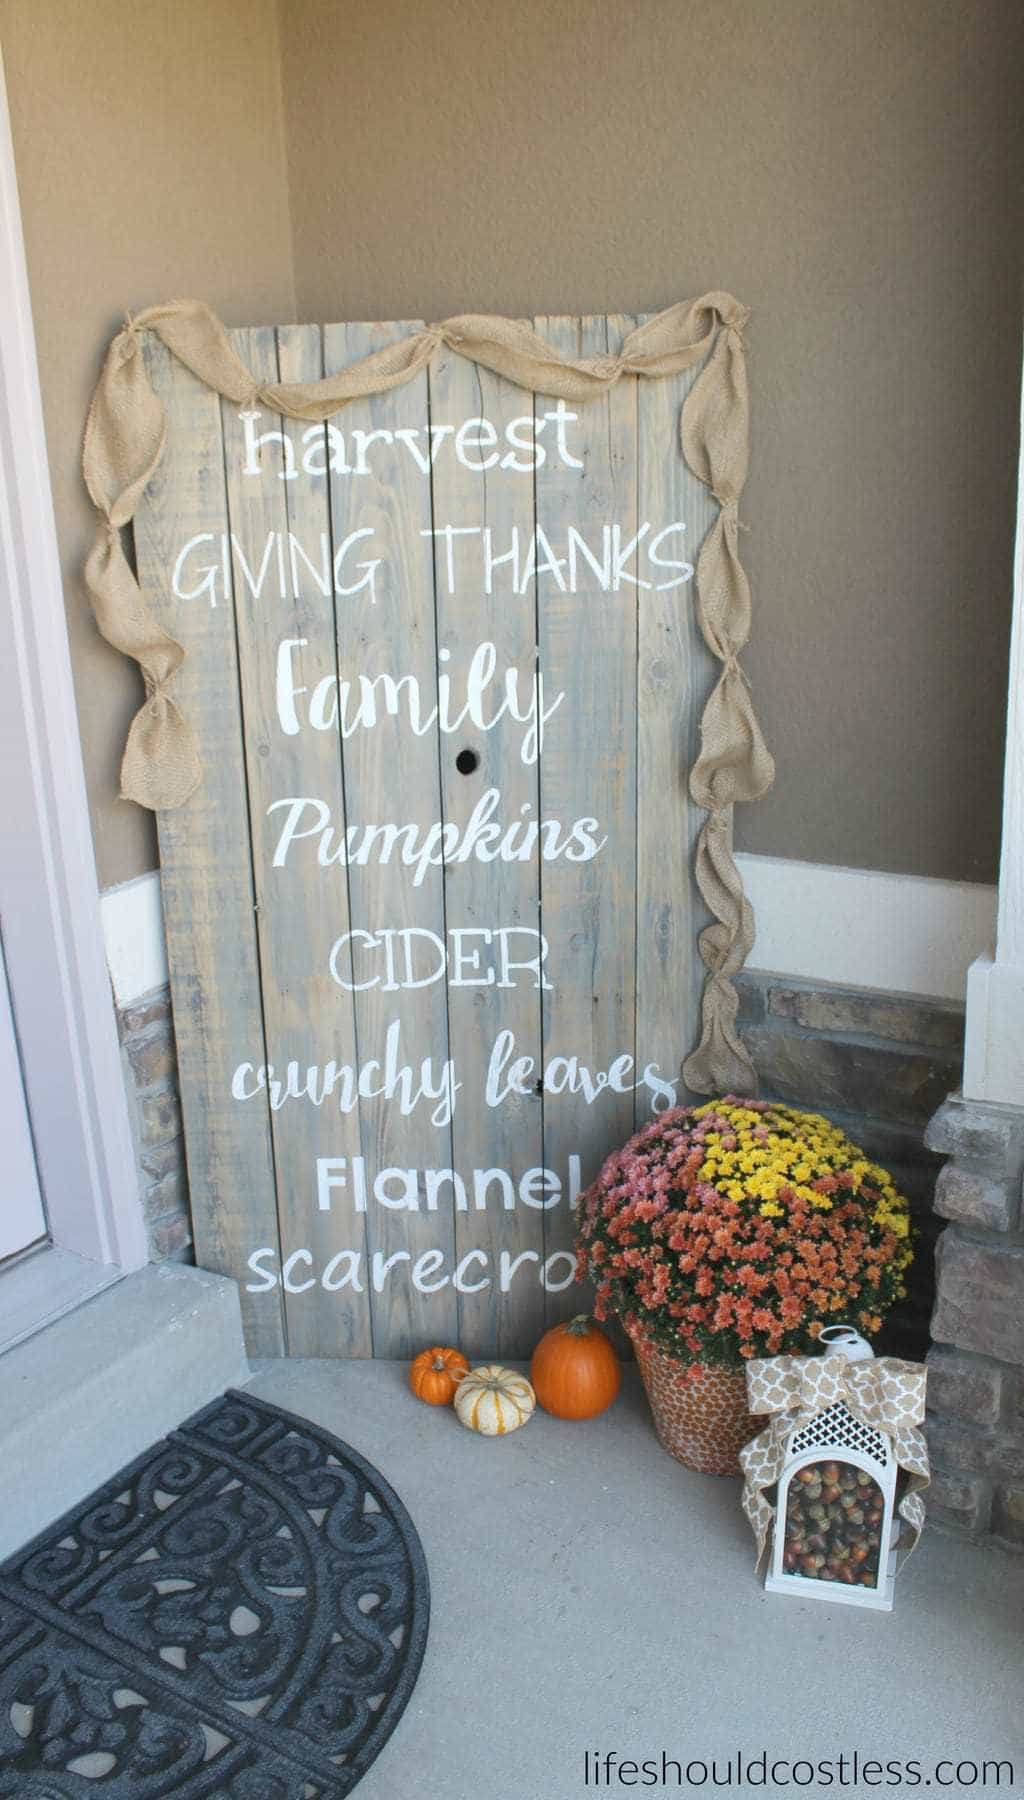 Rustic fall porch decor reveal. See this post and many more popular decor pins at lifeshouldcostless.com.